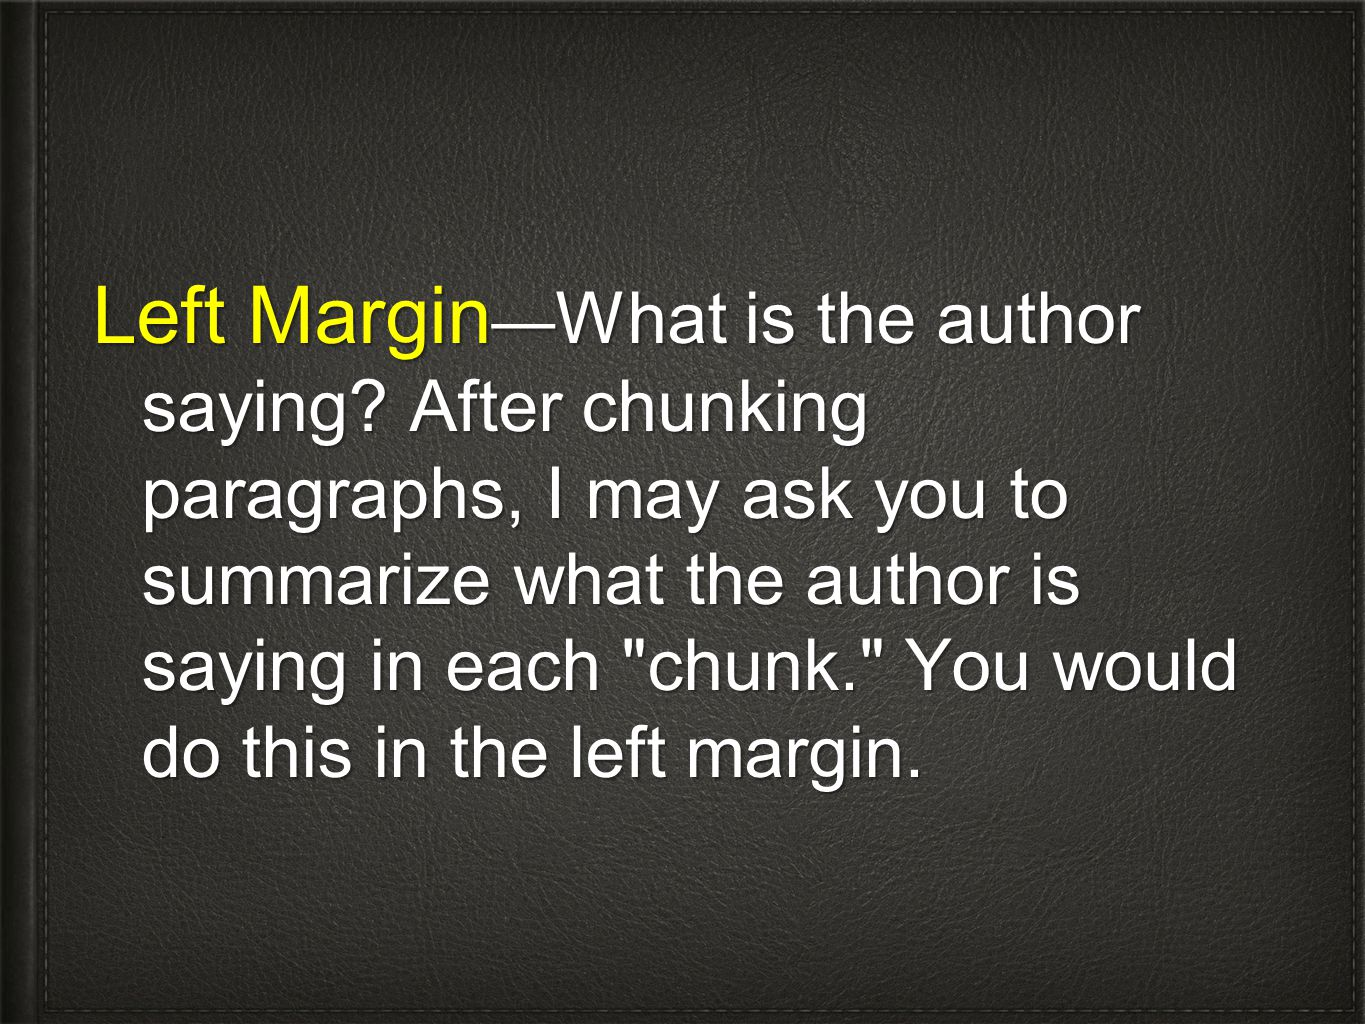 Left Margin—What is the author saying